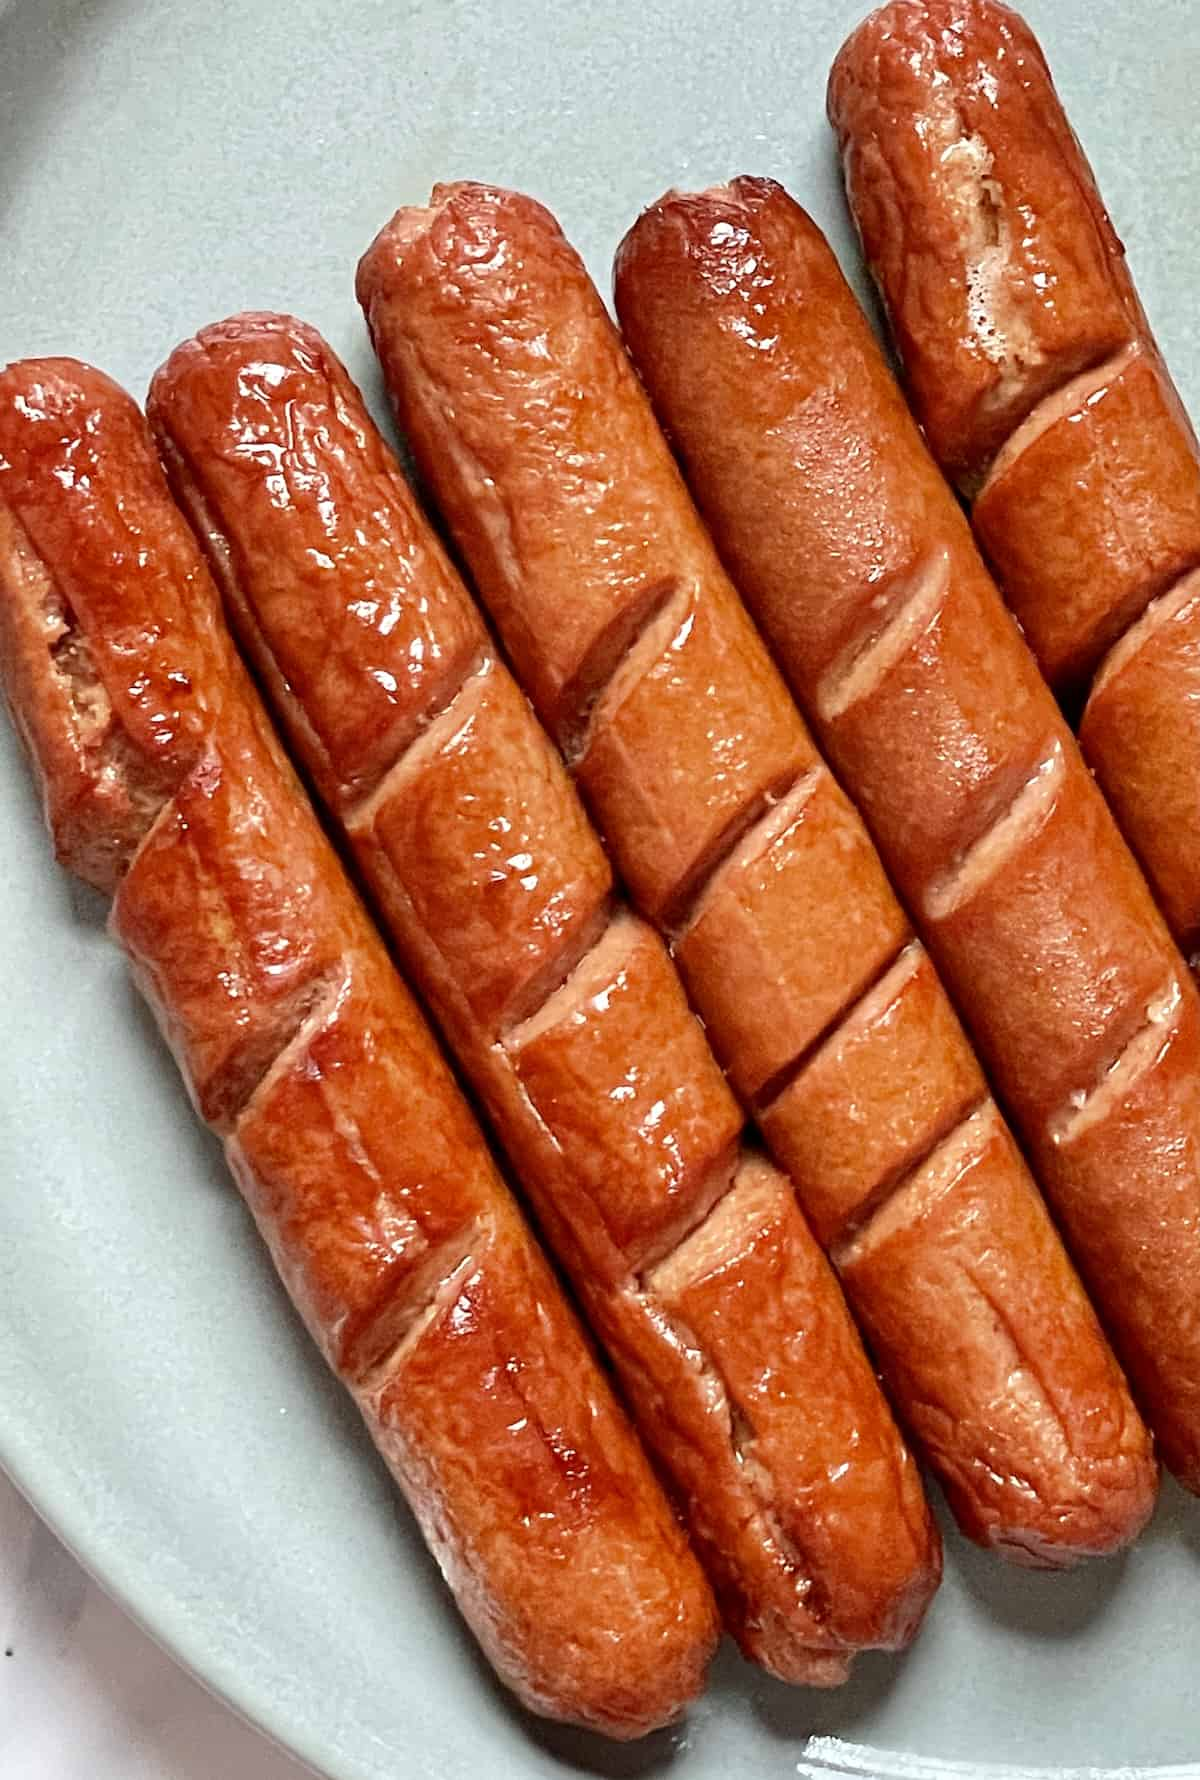 hot dogs with slits on a gray plate